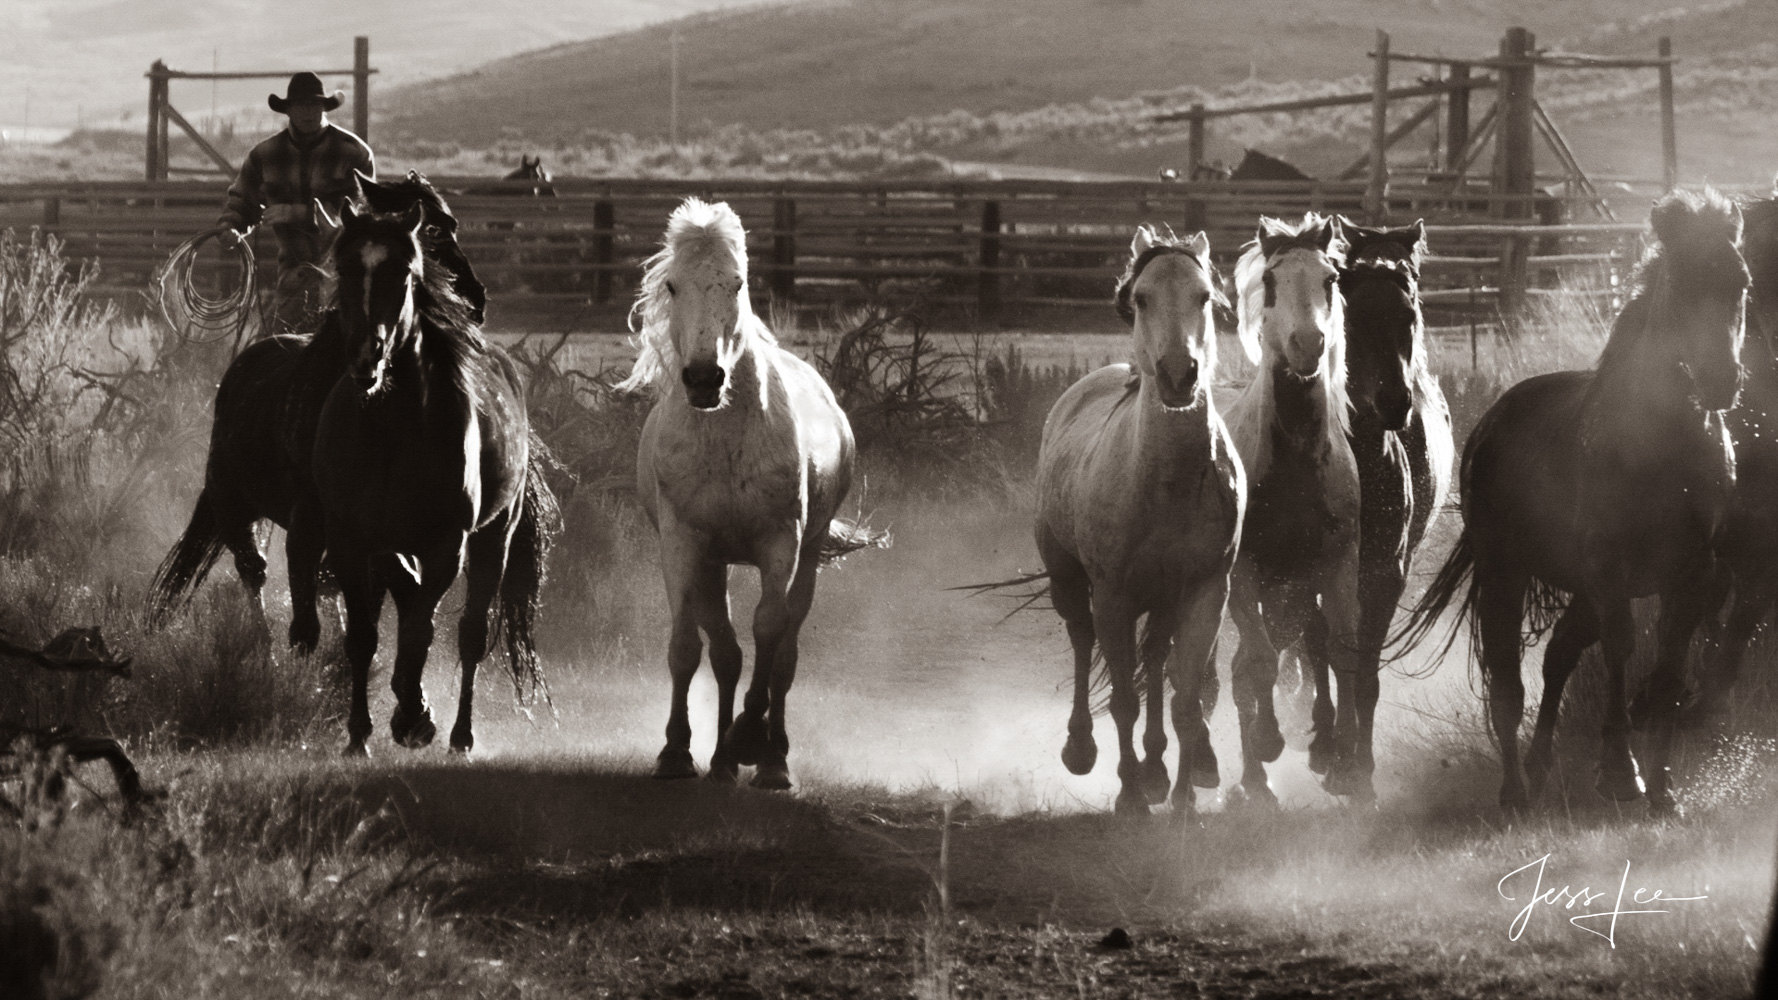 Fine Art Limited Edition Photography of Cowboys, Horses and life in the West. Colorado cowboy and horse herd running on their...